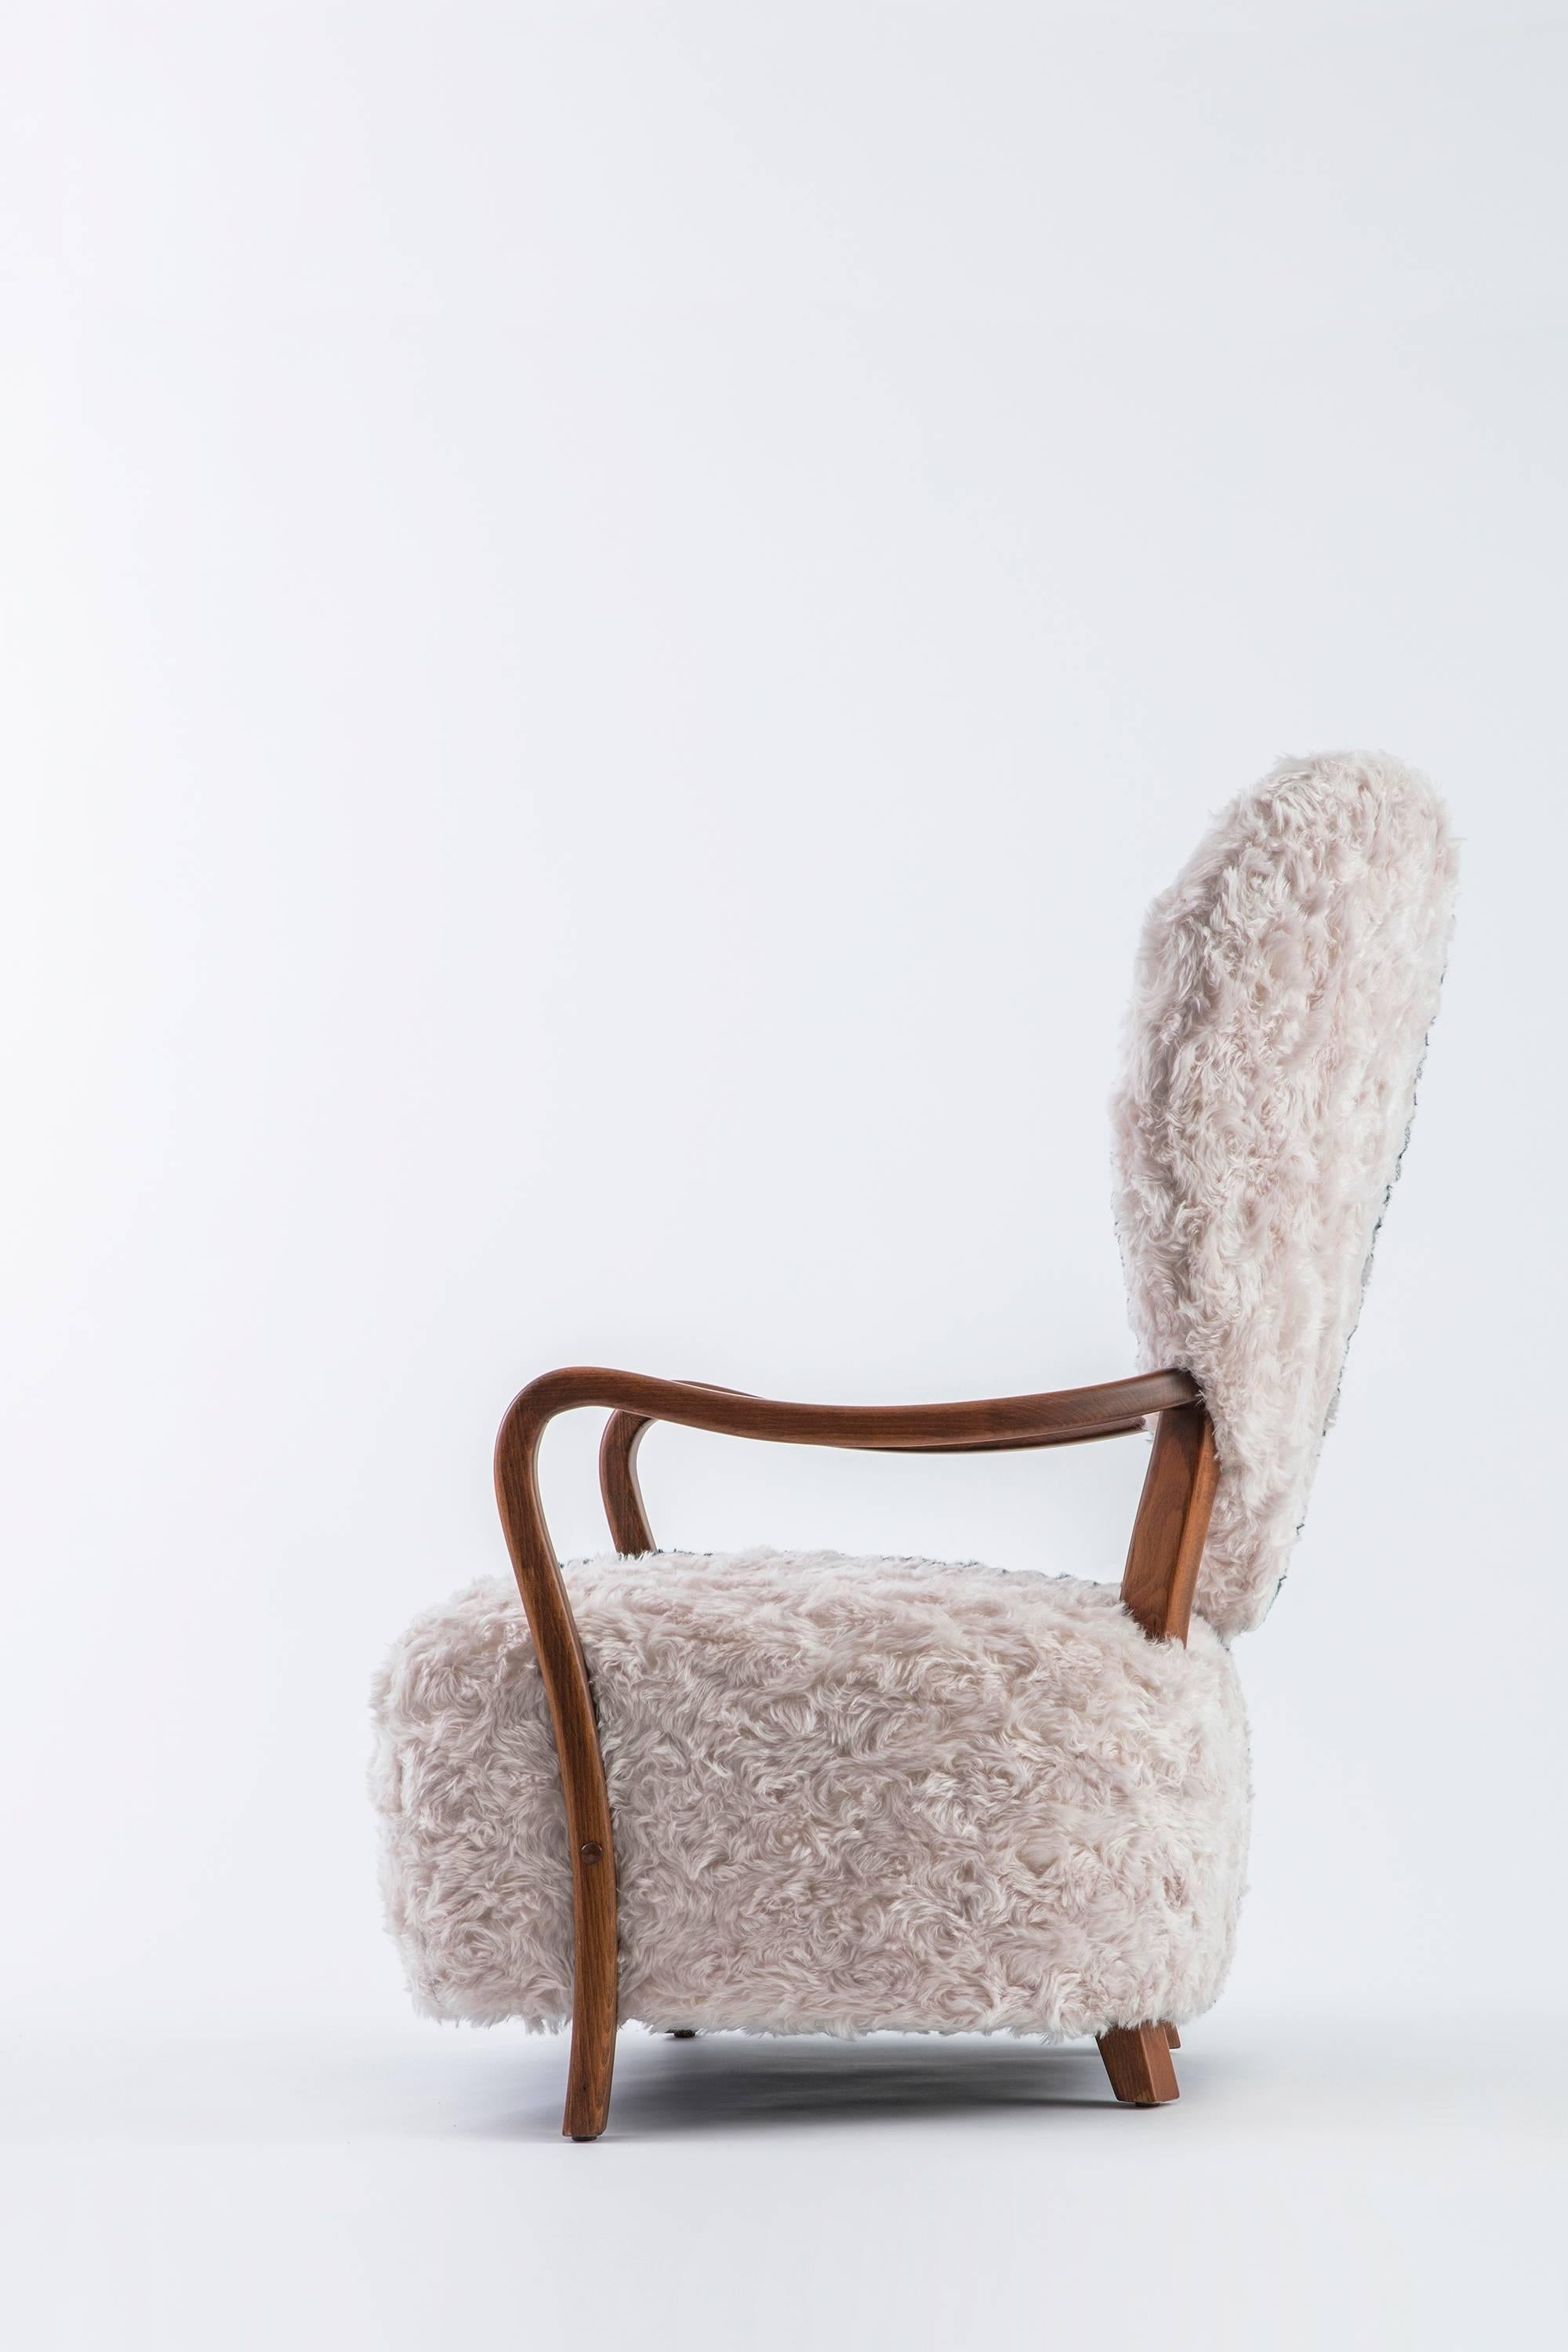 Arts And Crafts Contemporary Beechwood Uni Armchair With Heart Shaped Back  And Mohair Upholstery For Sale